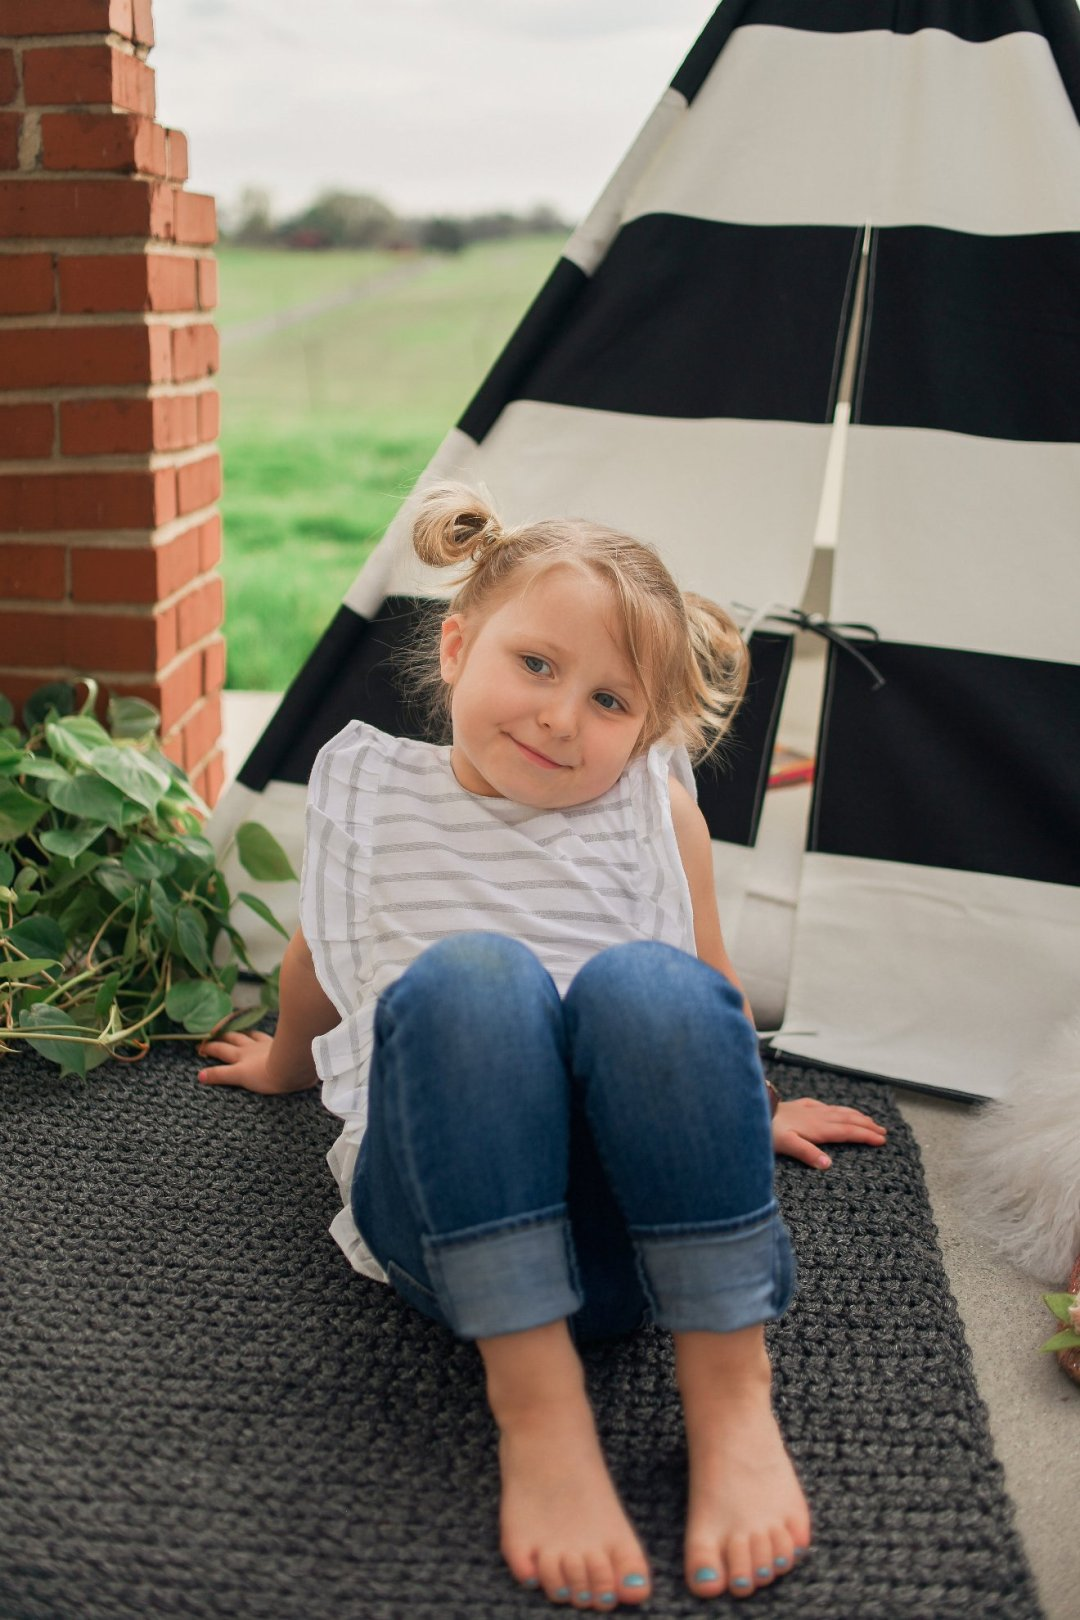 Little girl sitting on rug with teepee in background